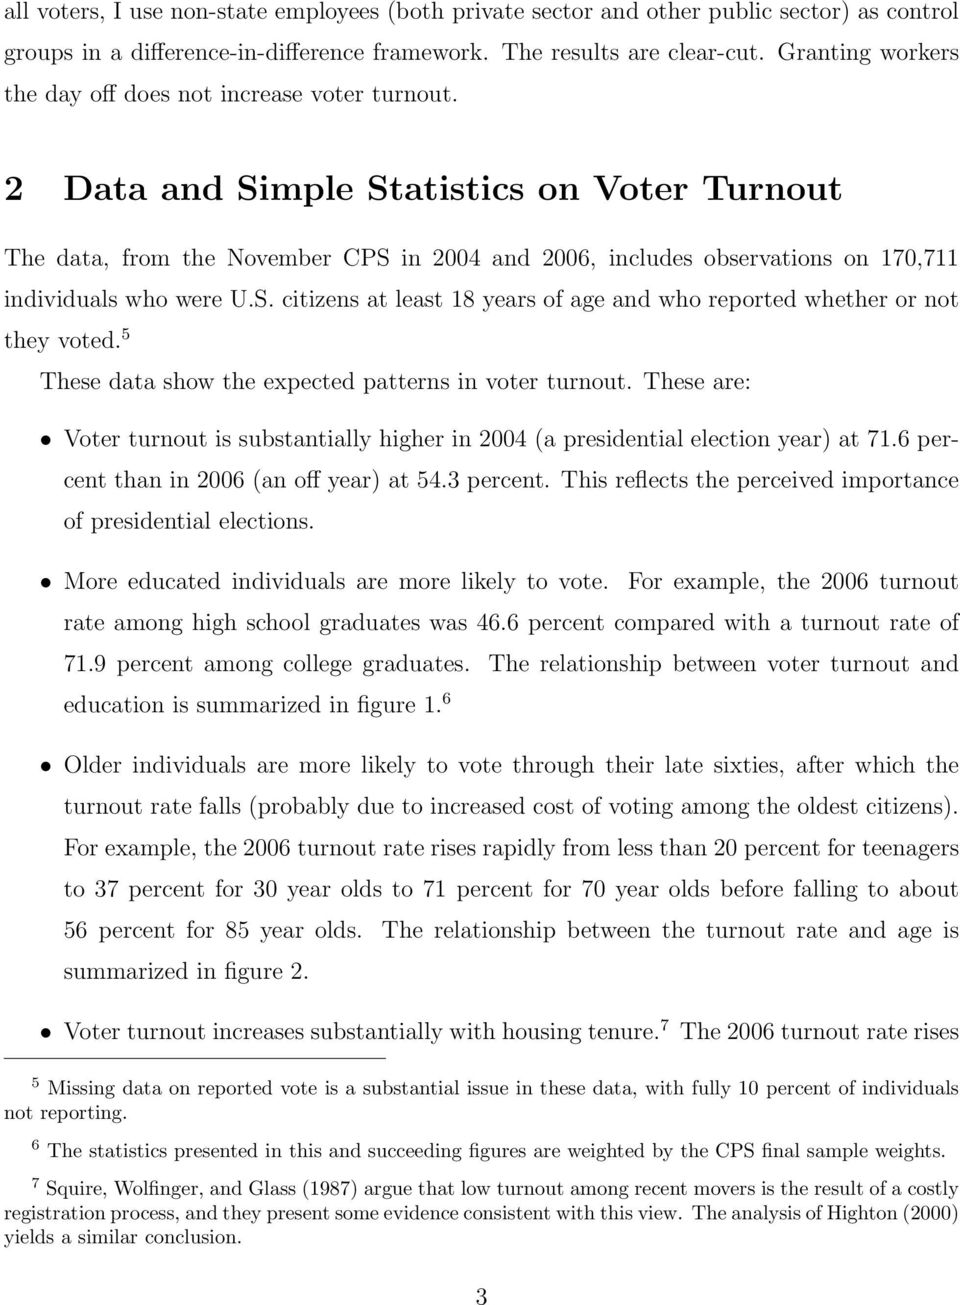 2 Data and Simple Statistics on Voter Turnout The data, from the November CPS in 2004 and 2006, includes observations on 170,711 individuals who were U.S. citizens at least 18 years of age and who reported whether or not they voted.